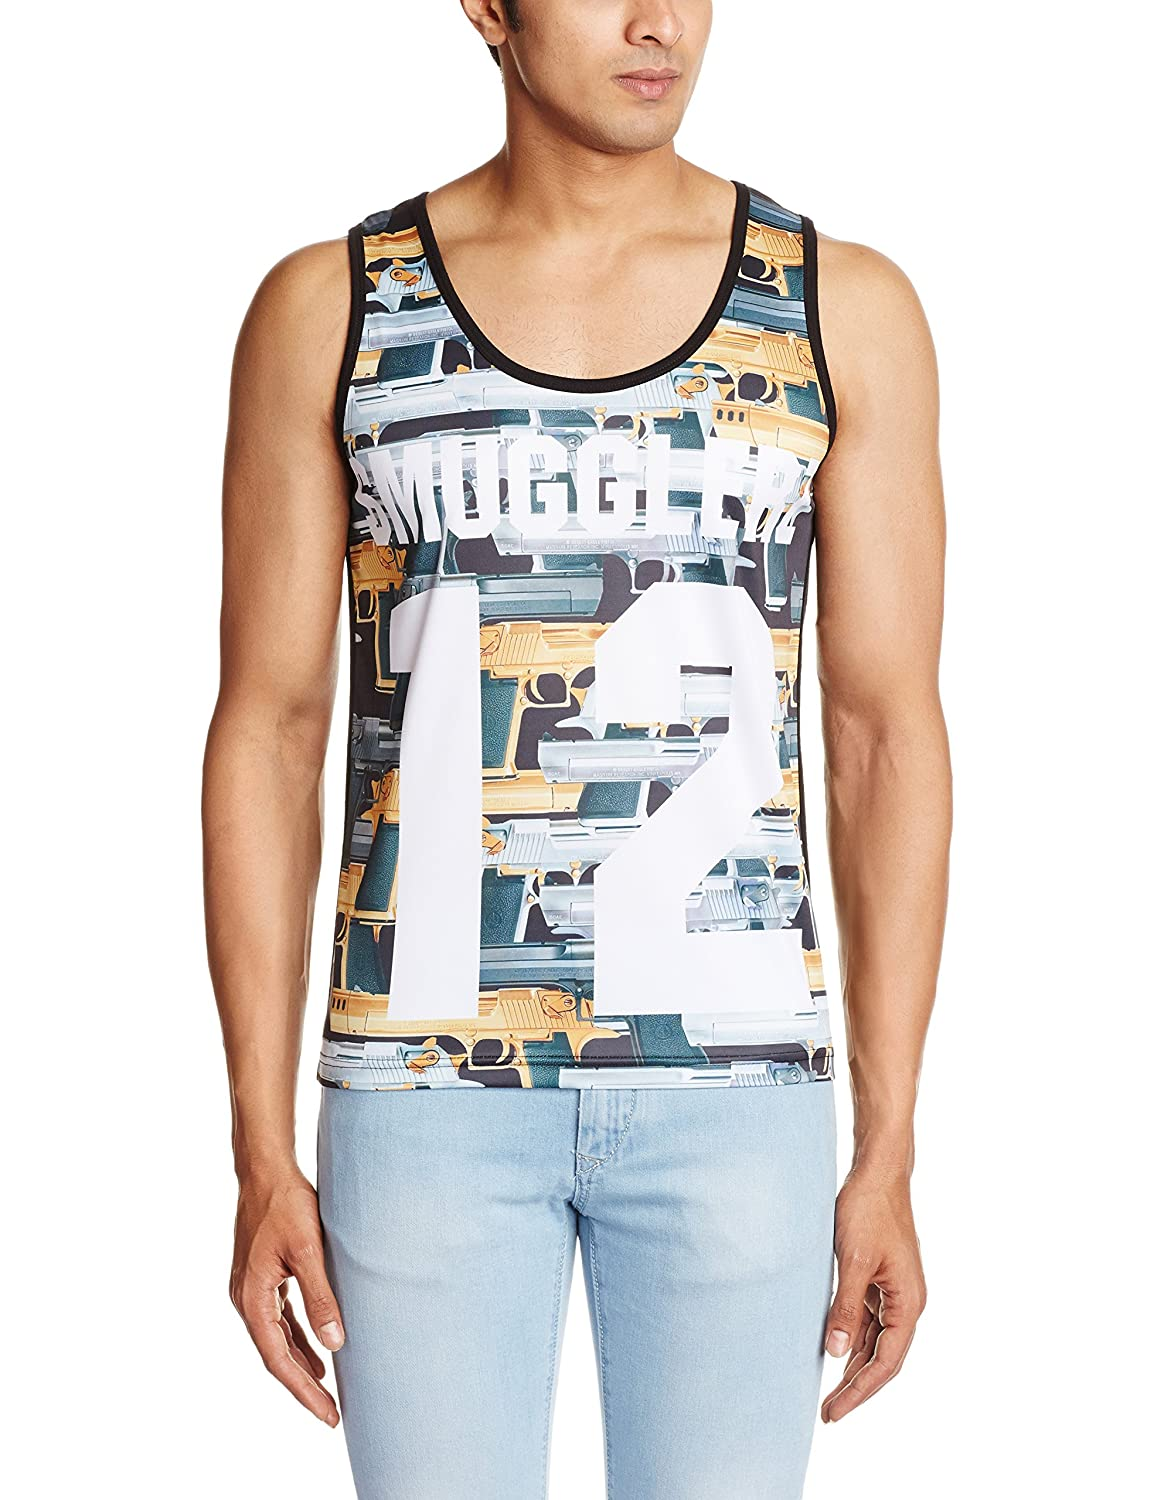 Up to 50% off on Men's Vests